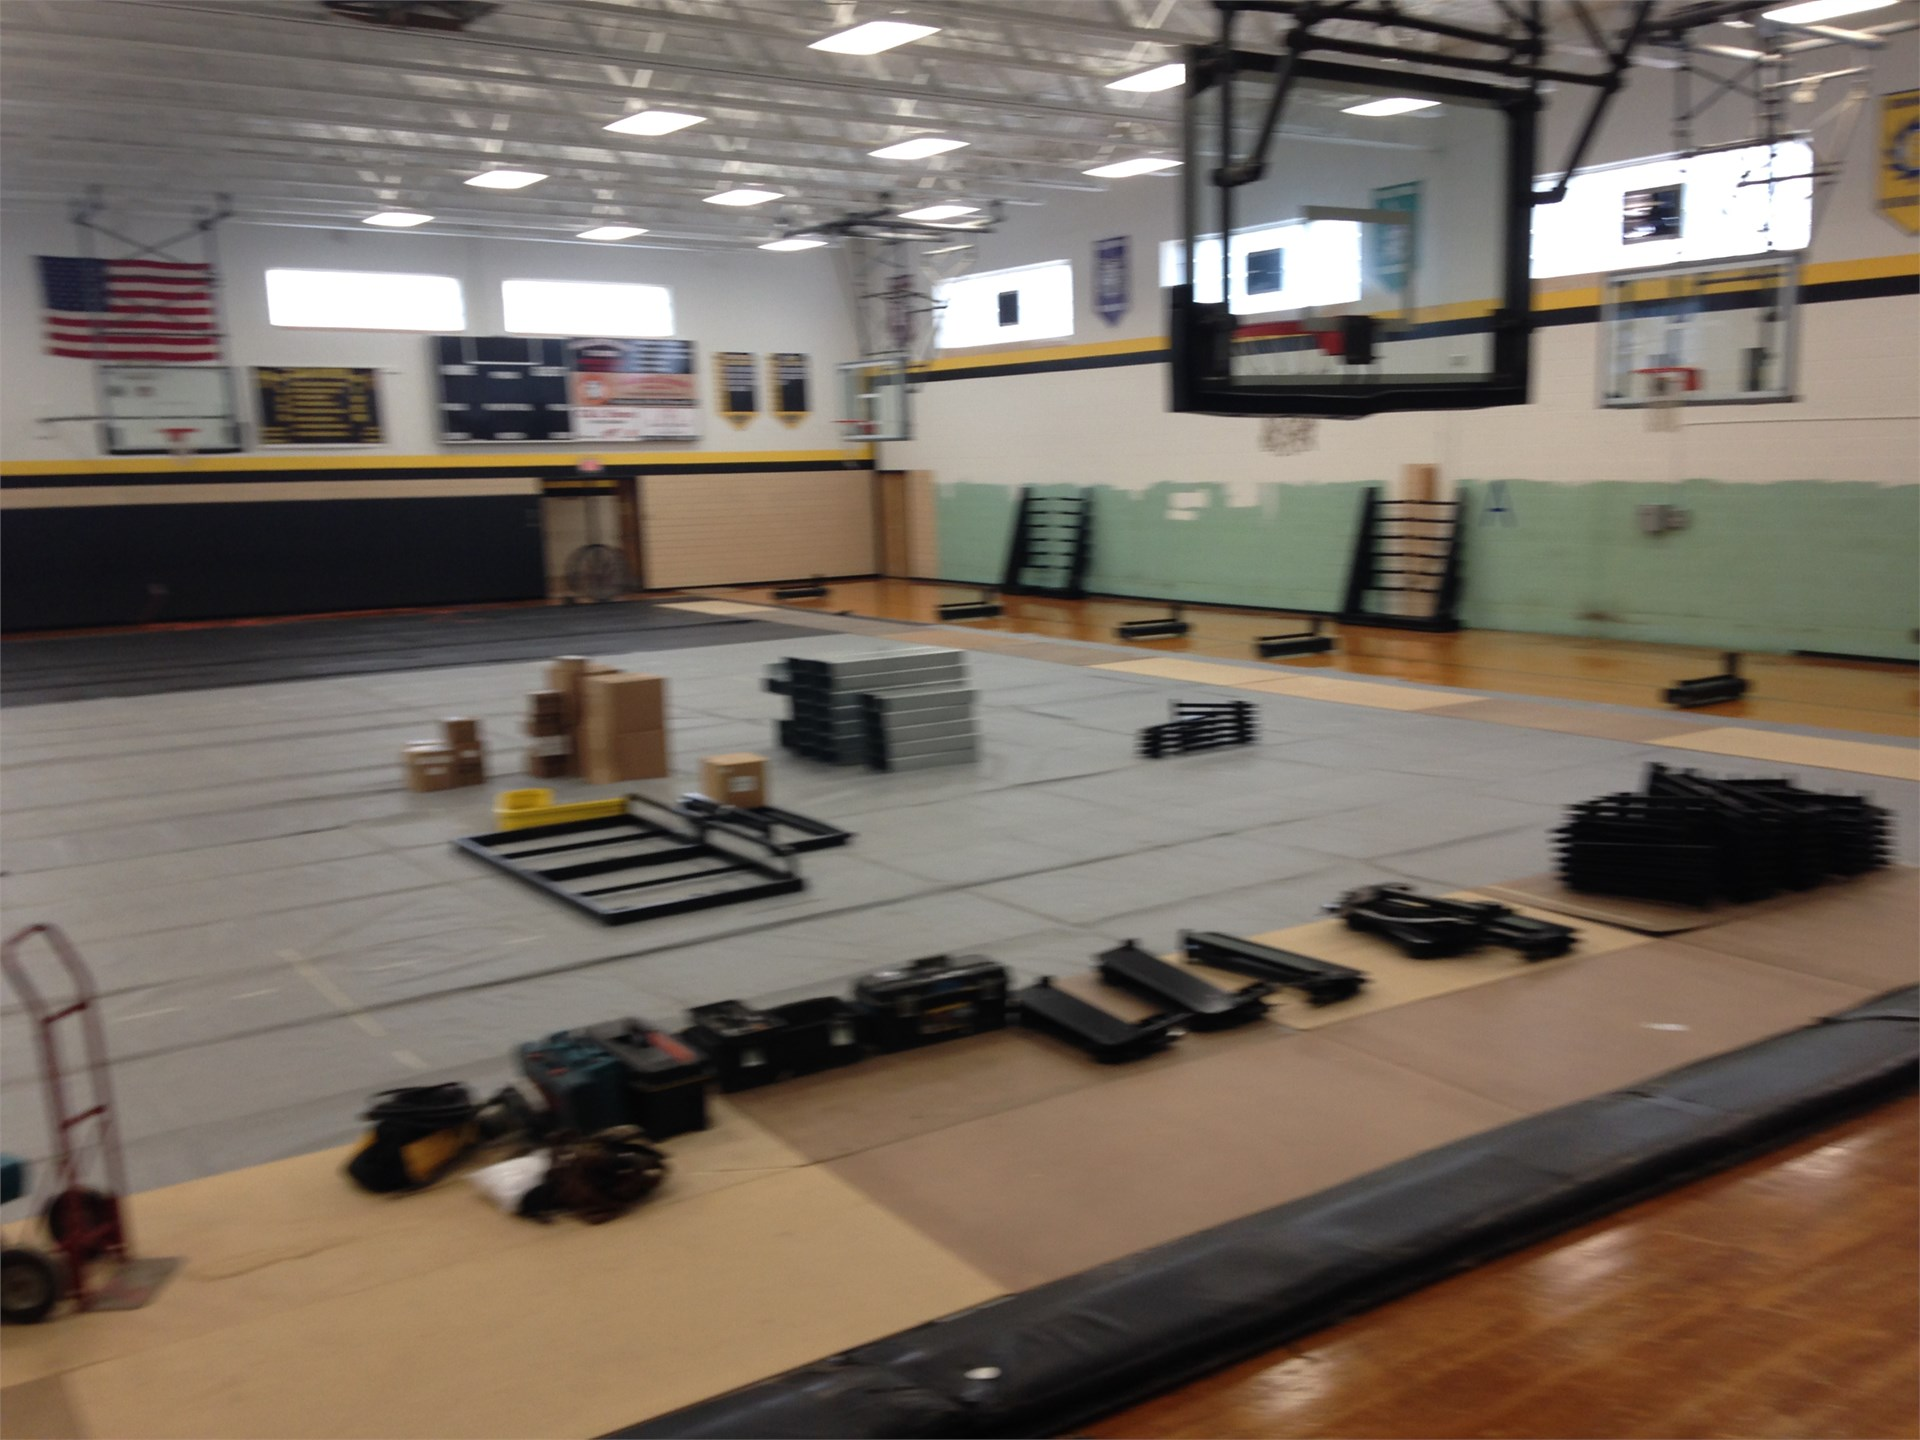 Bleacher parts being placed